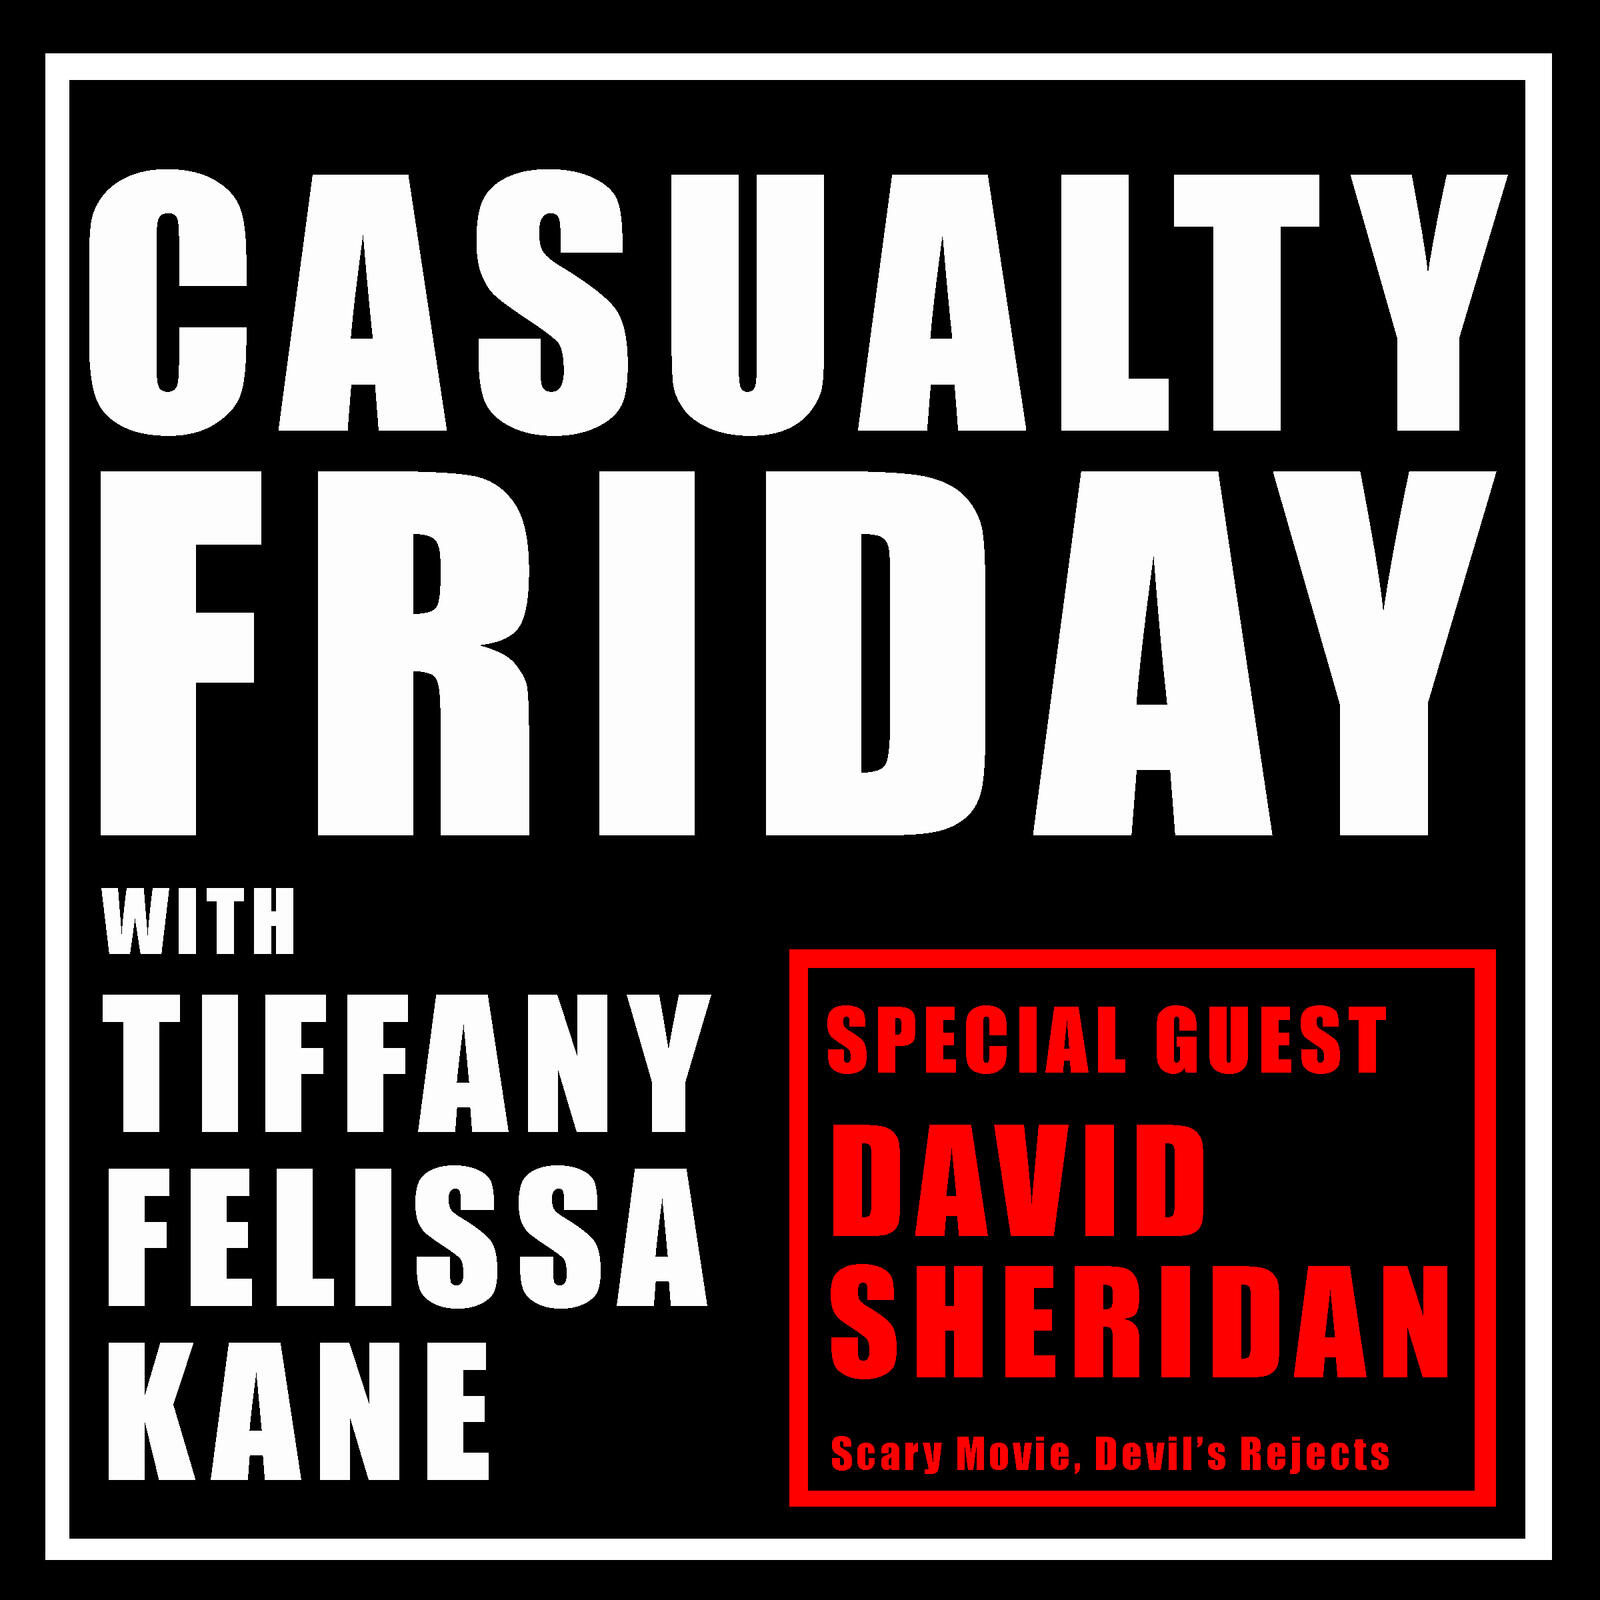 Casualty Friday with special guest David Sheridan